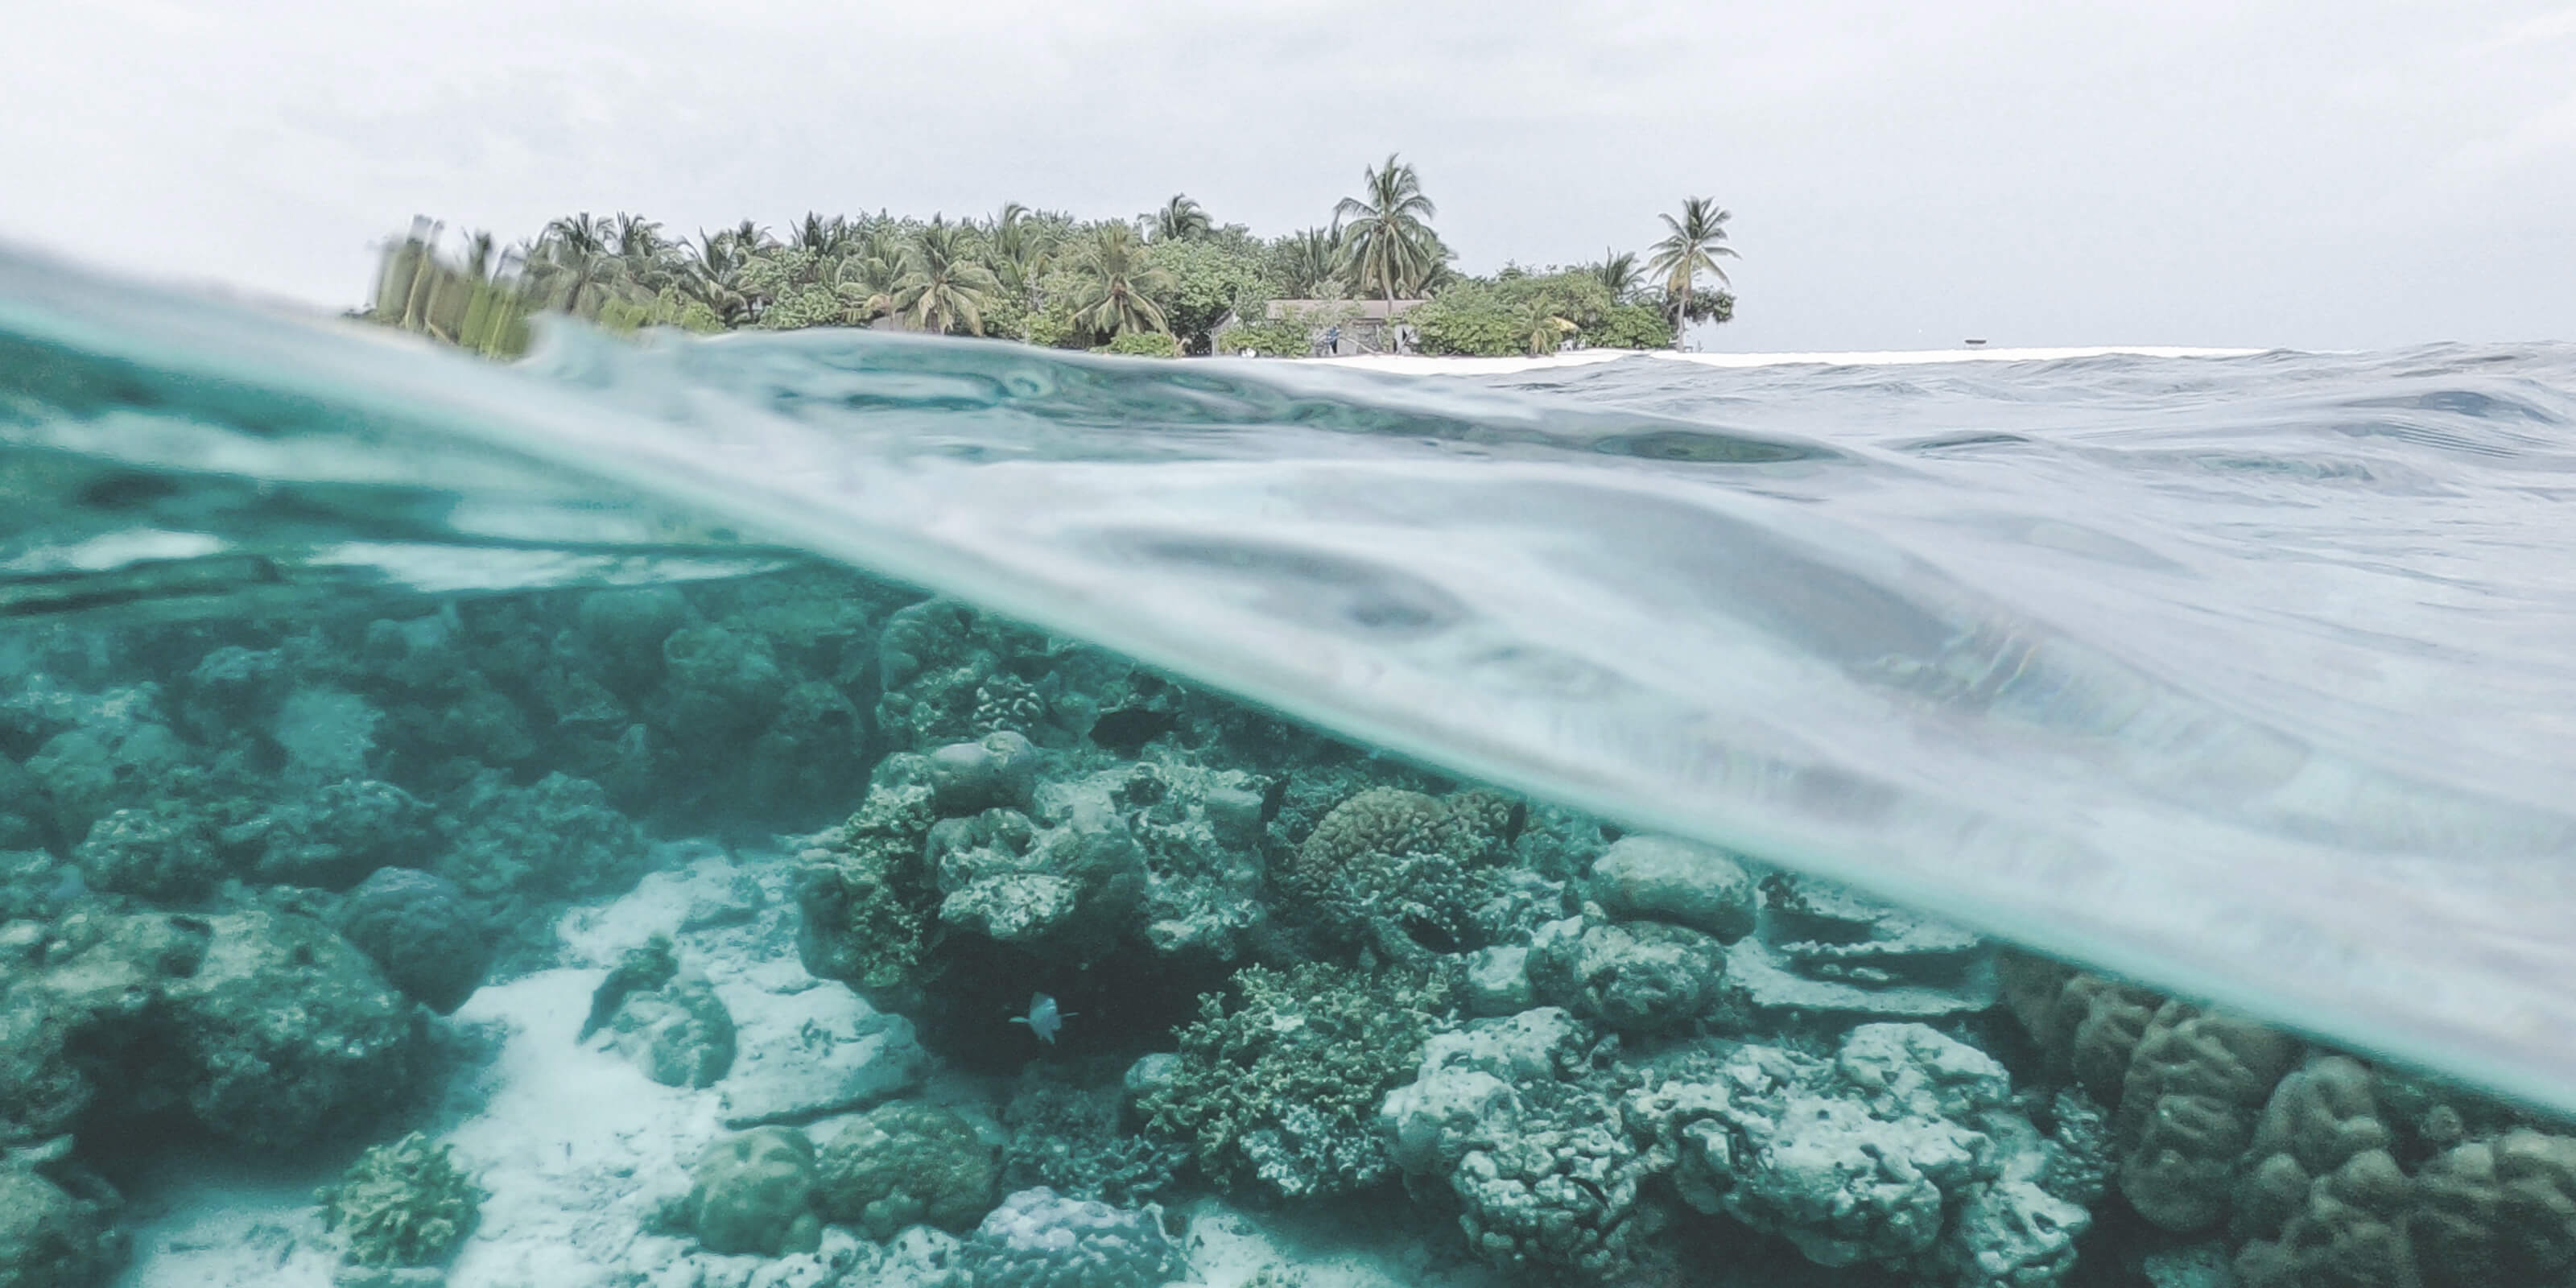 coral reef, island in distance